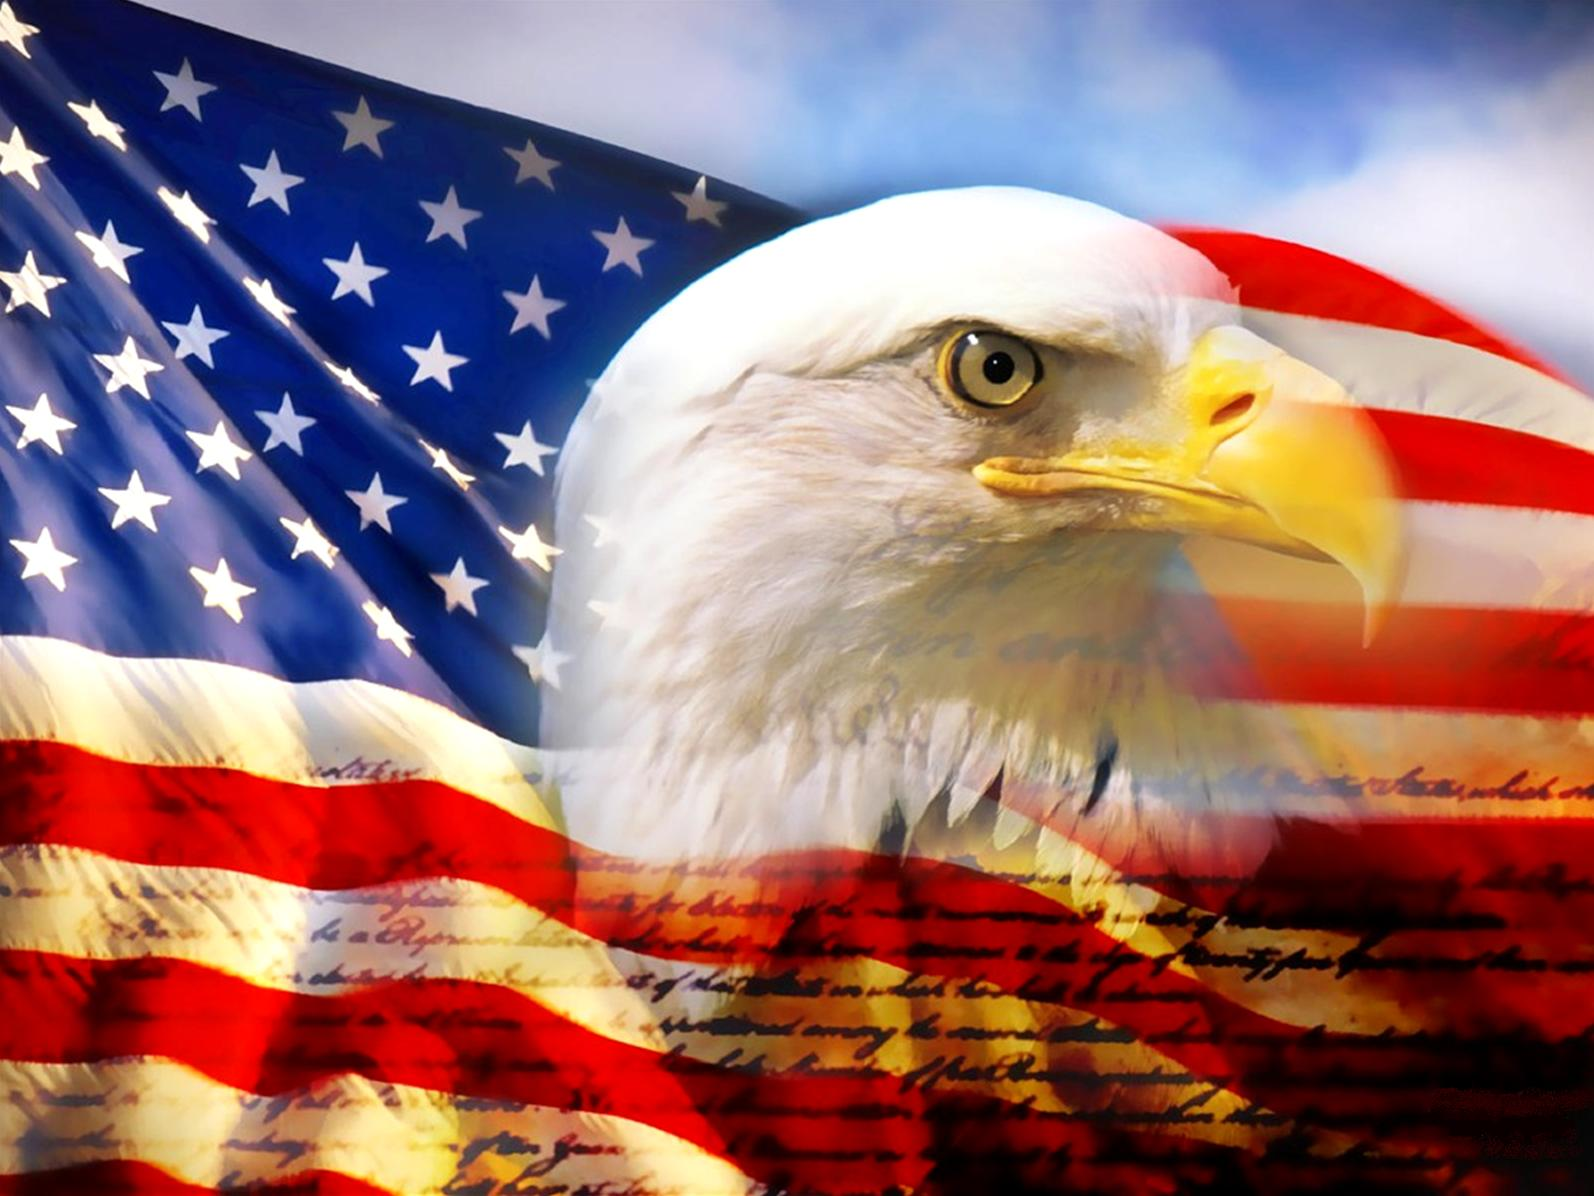 Bald_eagle_head_and_american_flag